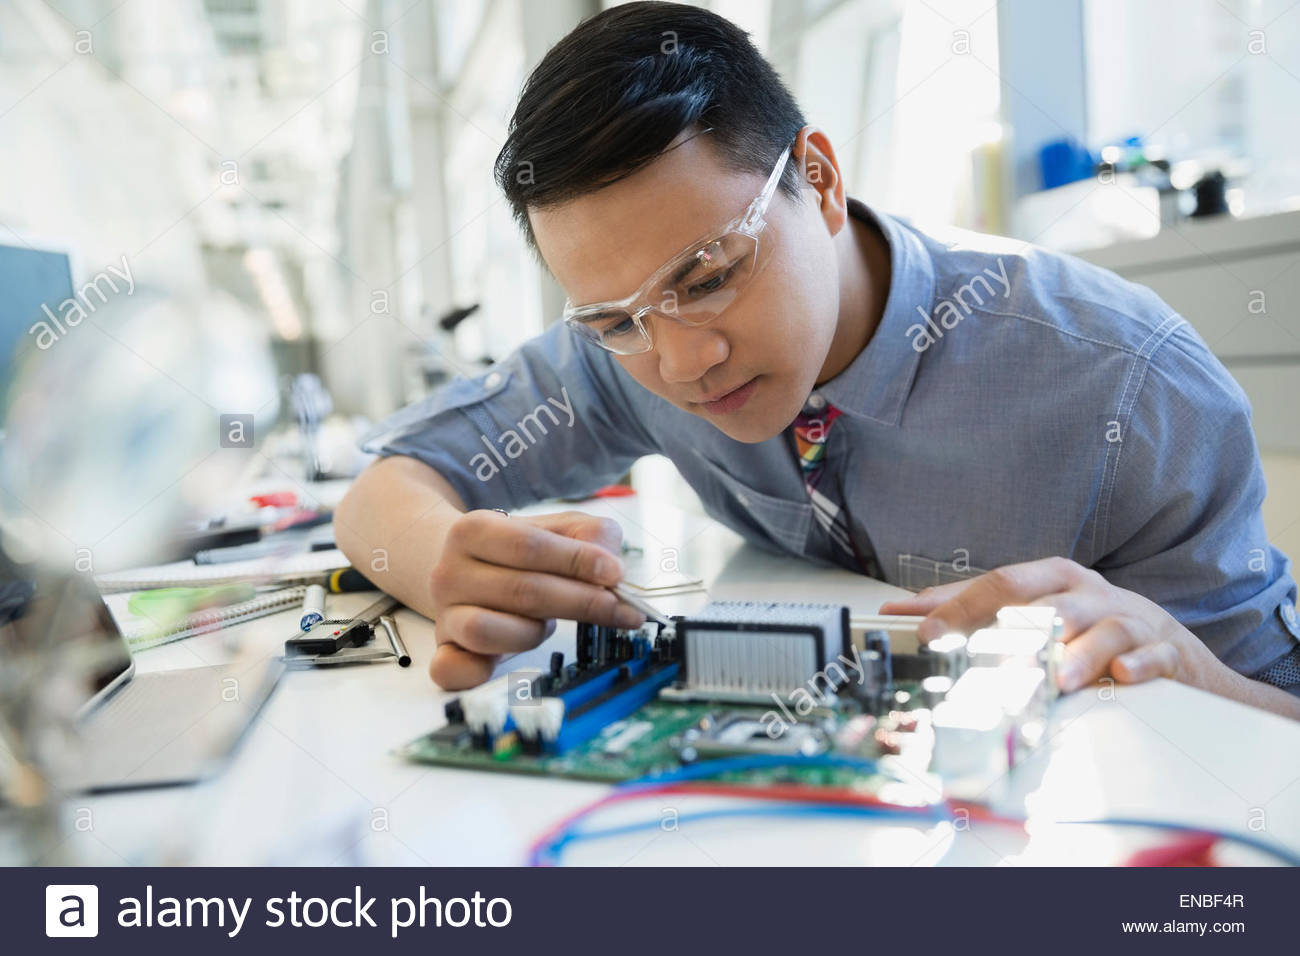 Focused engineer assembling circuit board - Stock Image